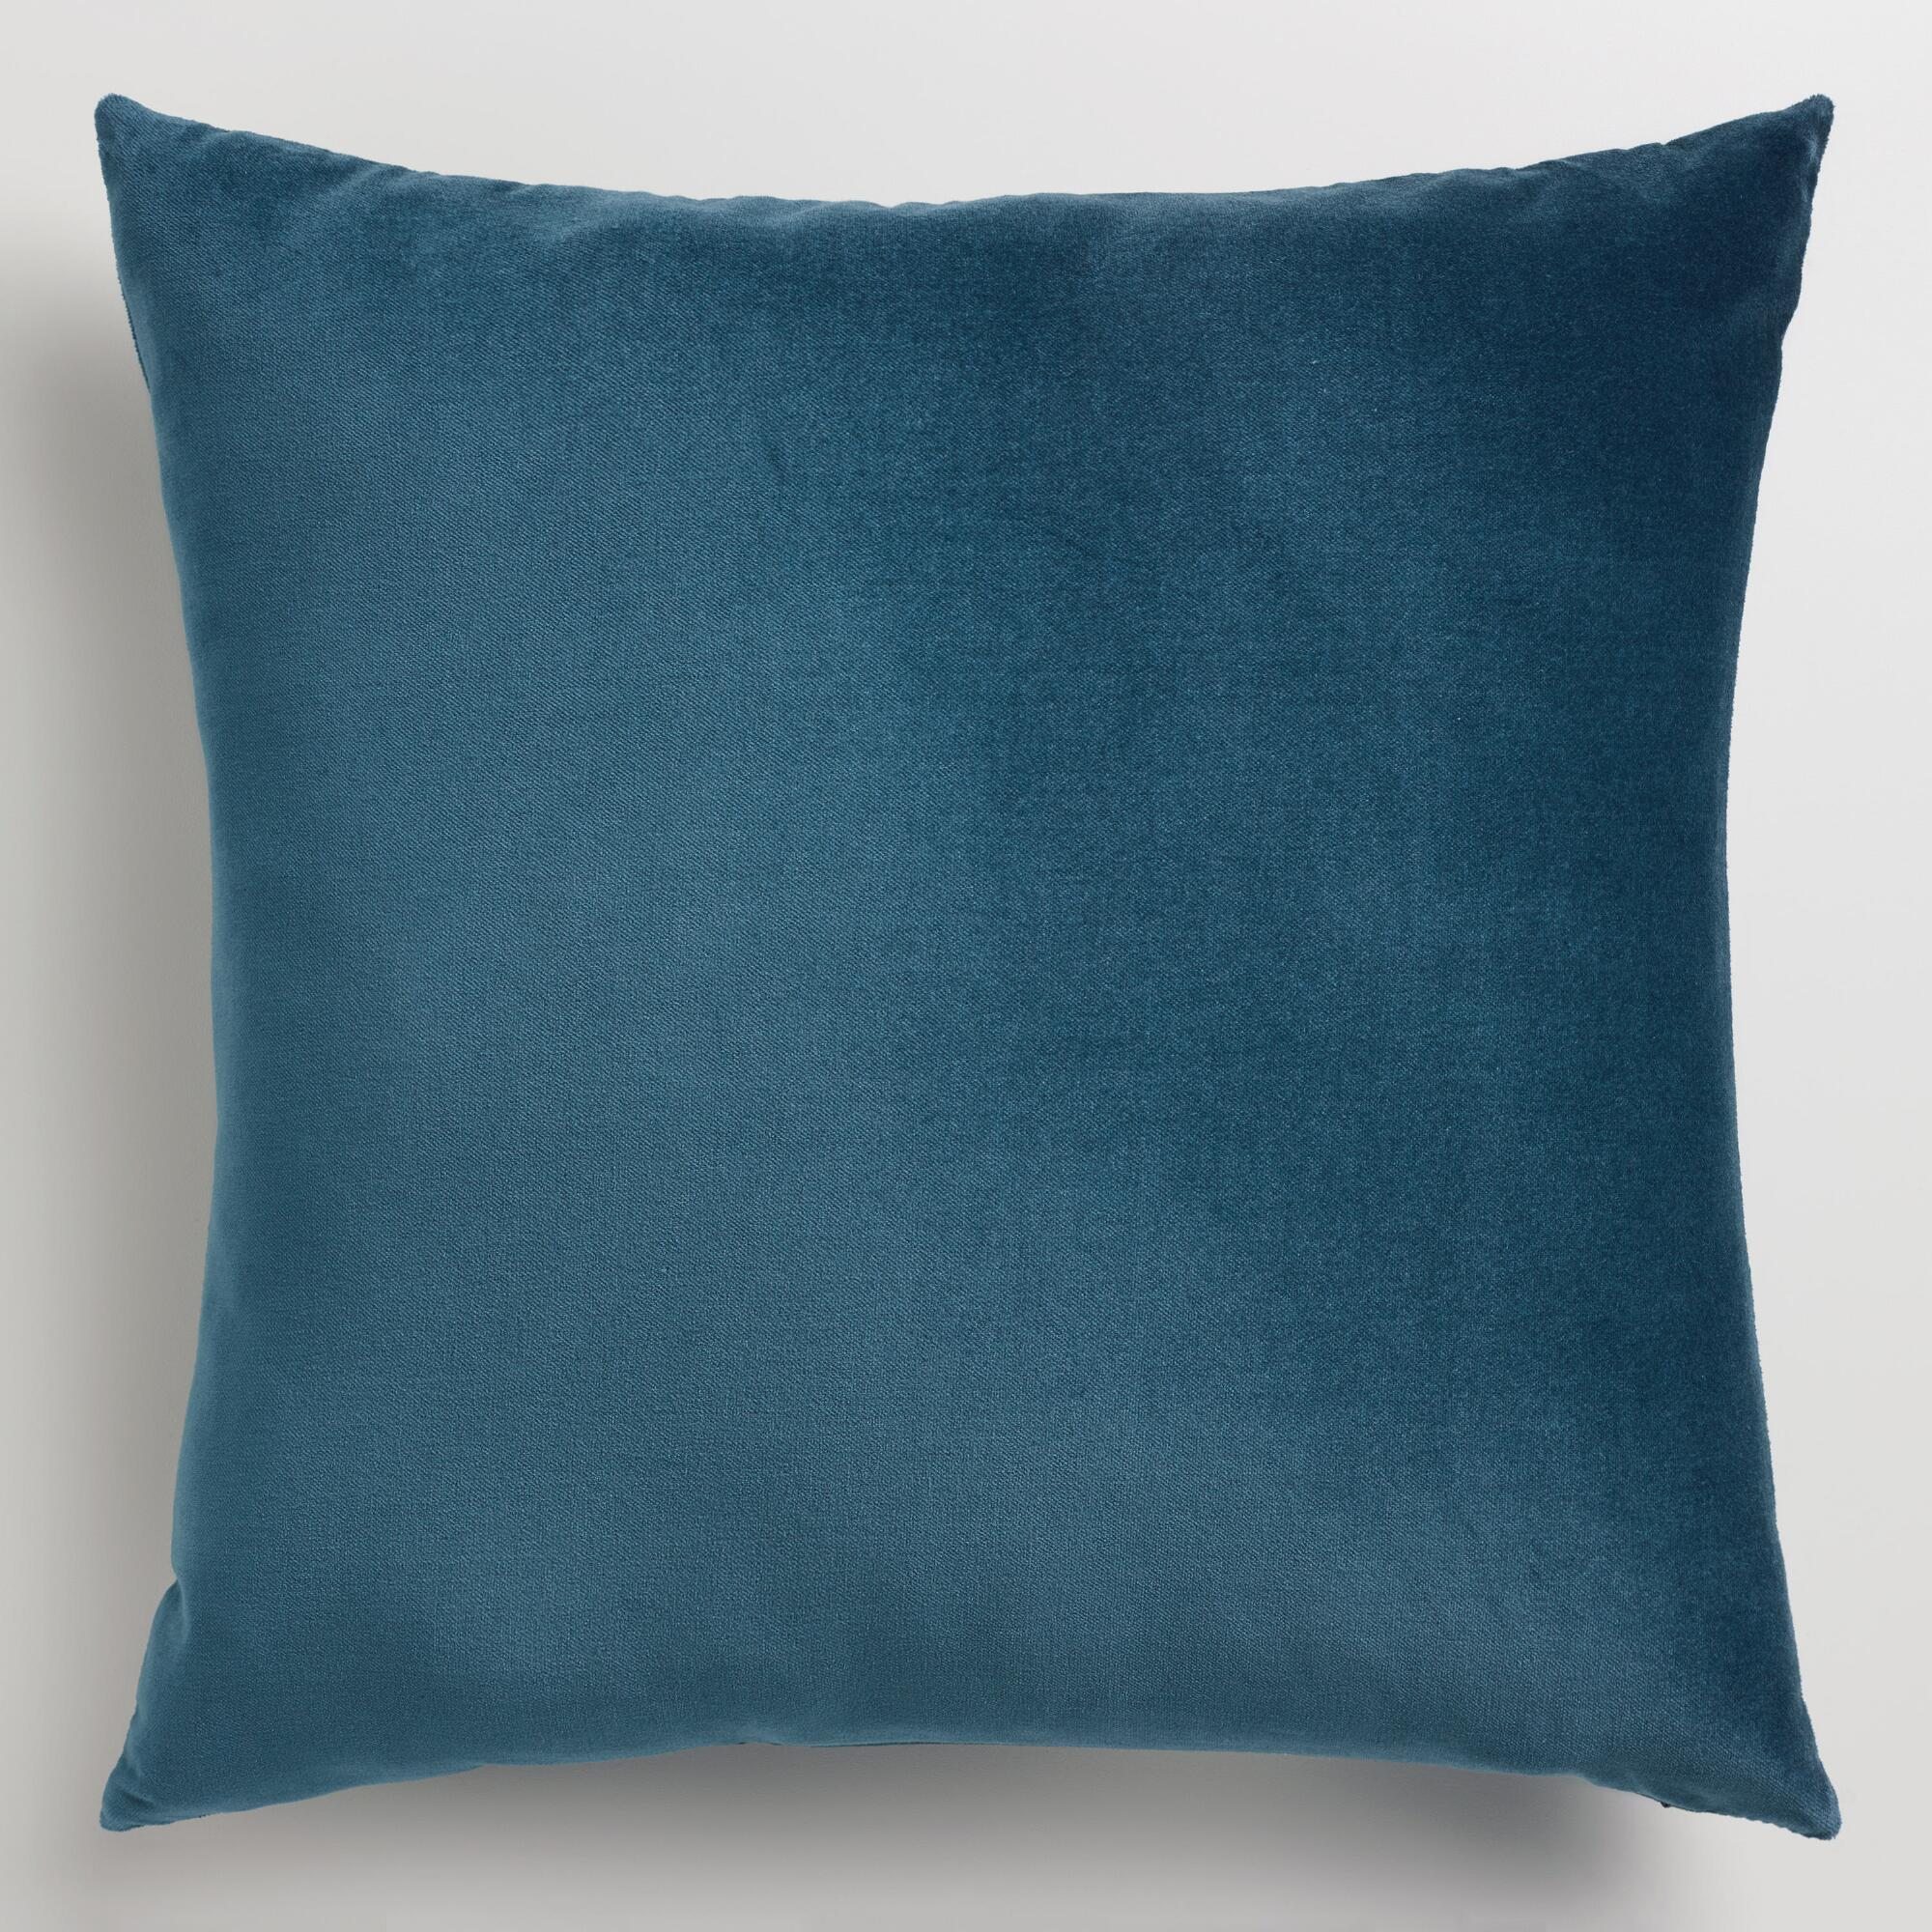 Decorative Pillows For Blue Couch : Blue Throw Pillows For Couch